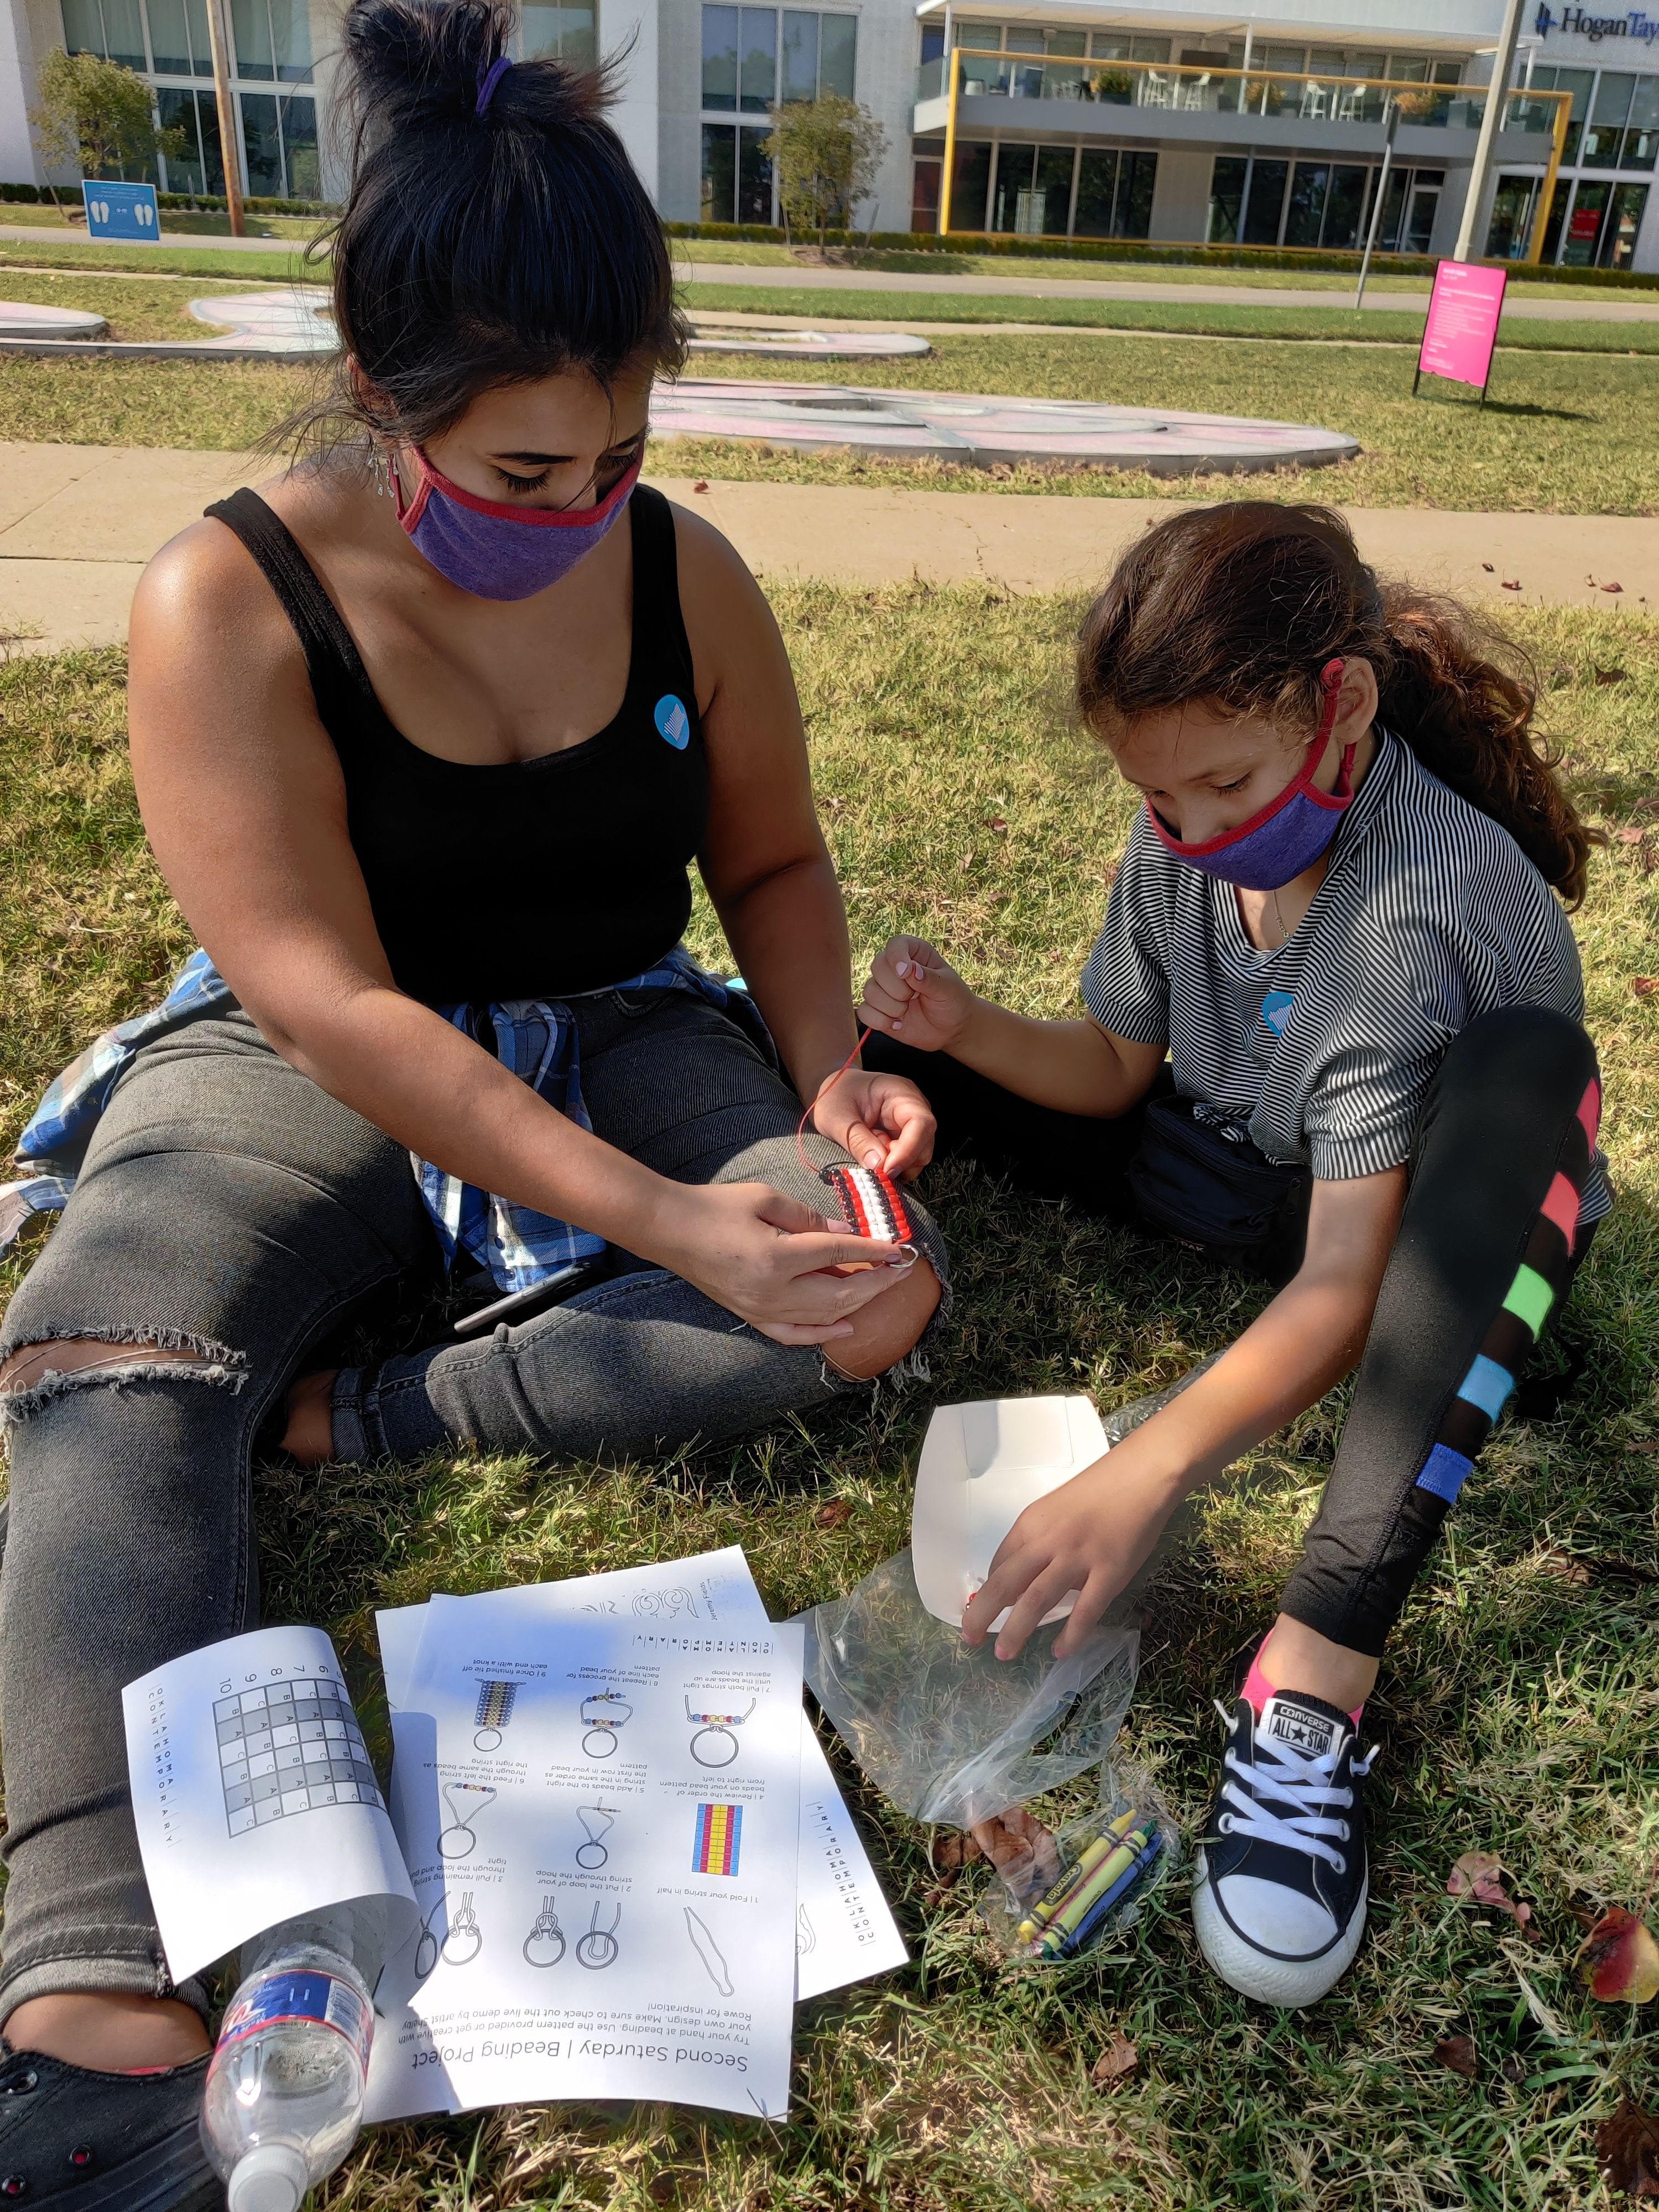 An adult and a child sit in the grass while working on an art project with beads